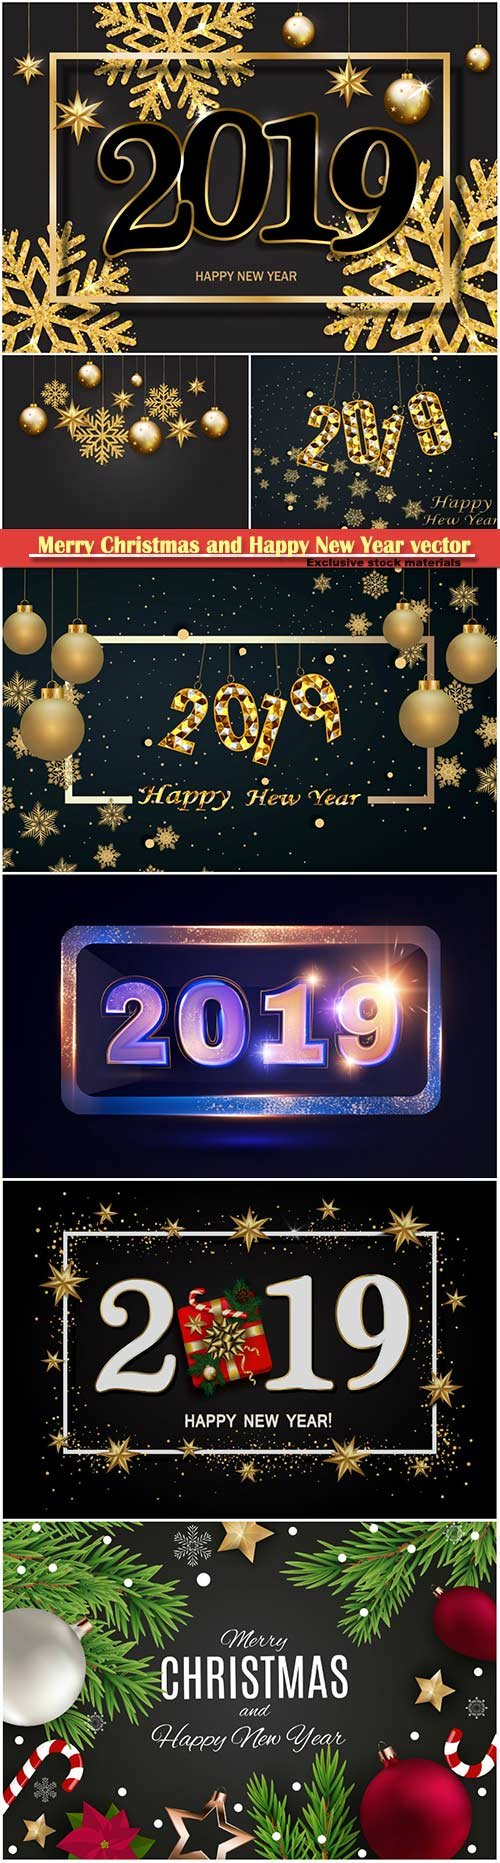 2019 Merry Christmas and Happy New Year vector design # 4